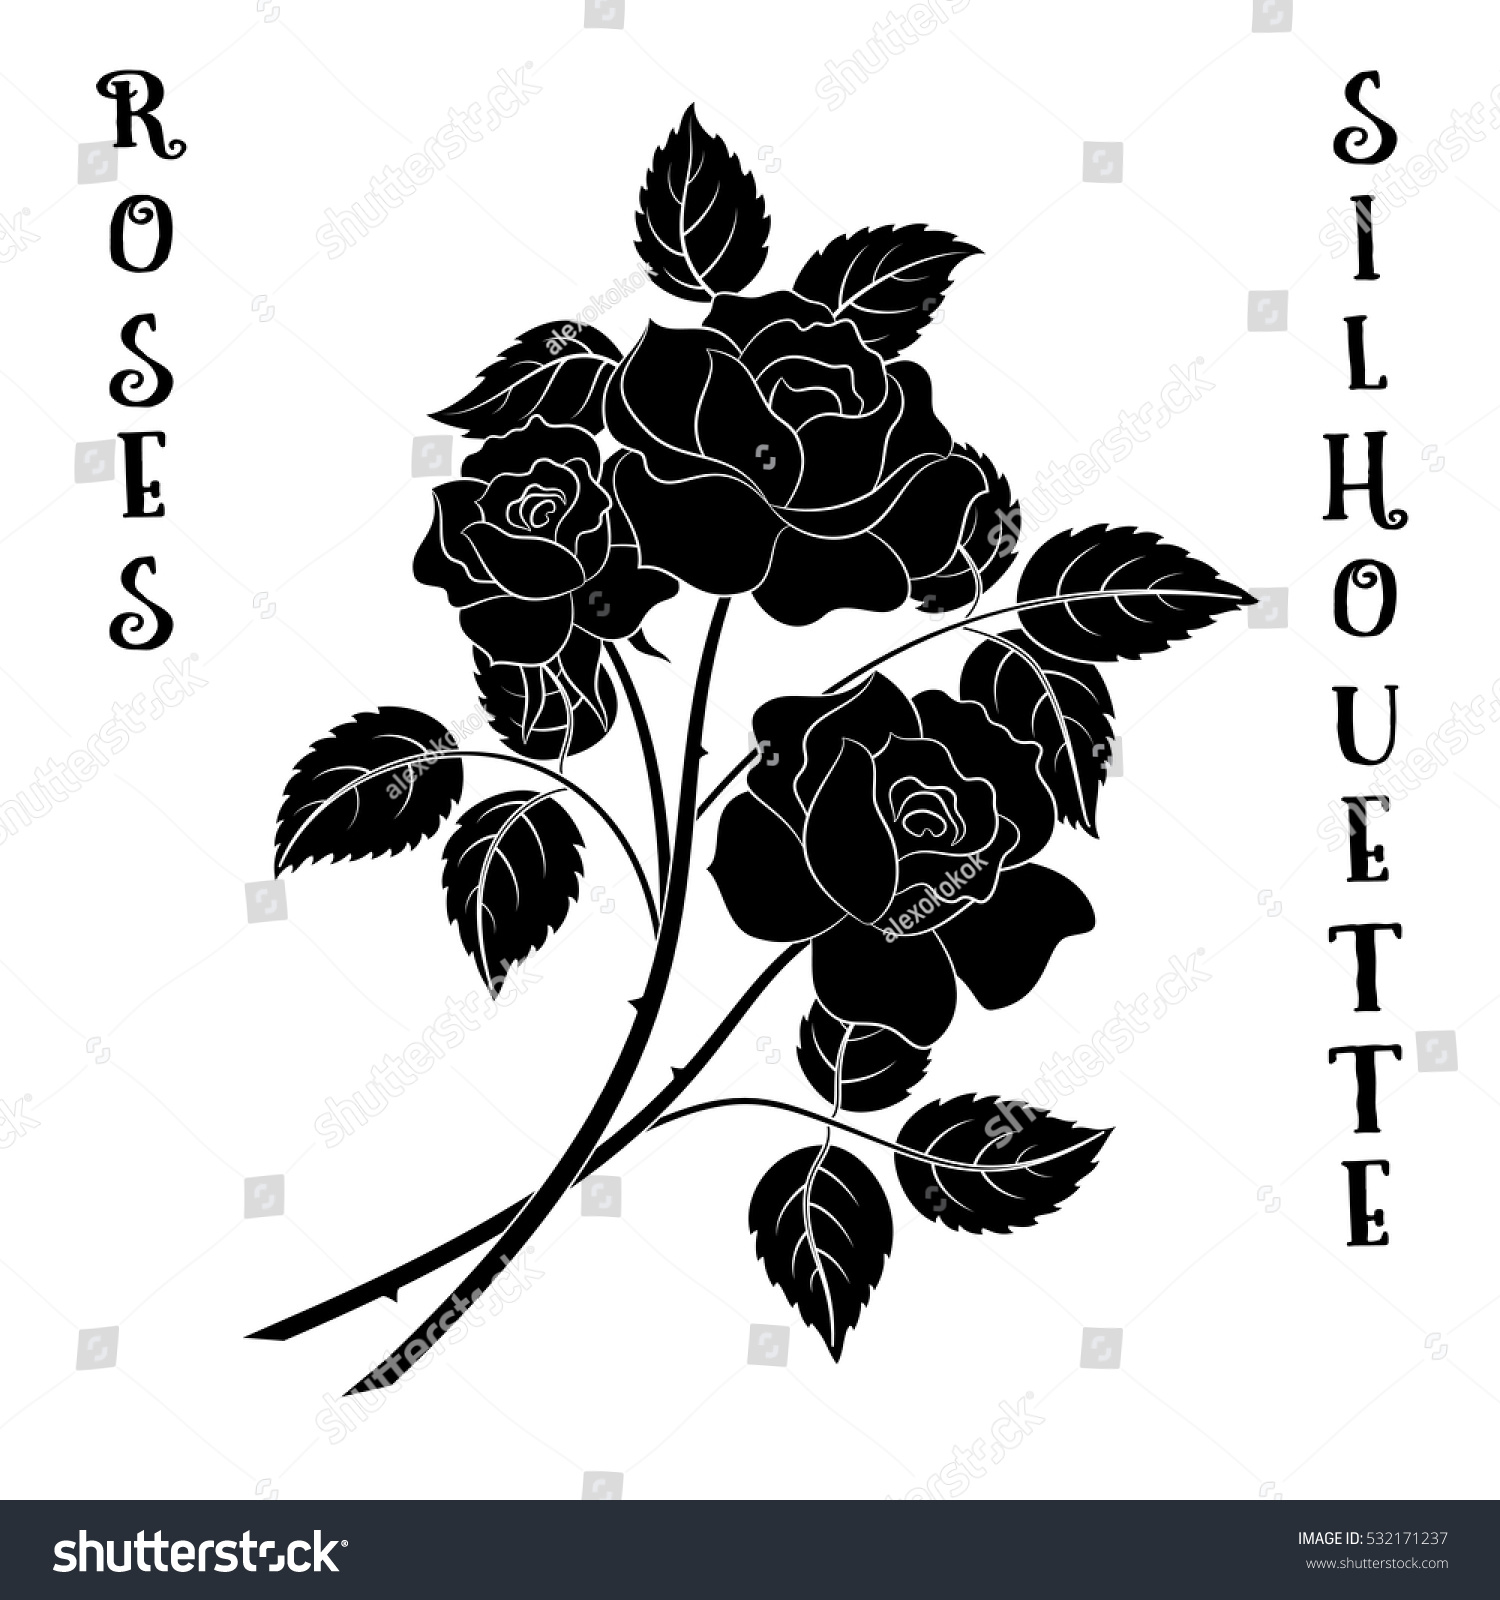 Roses Bouquet Three Black Flowers Silhouette Stock Vector Royalty